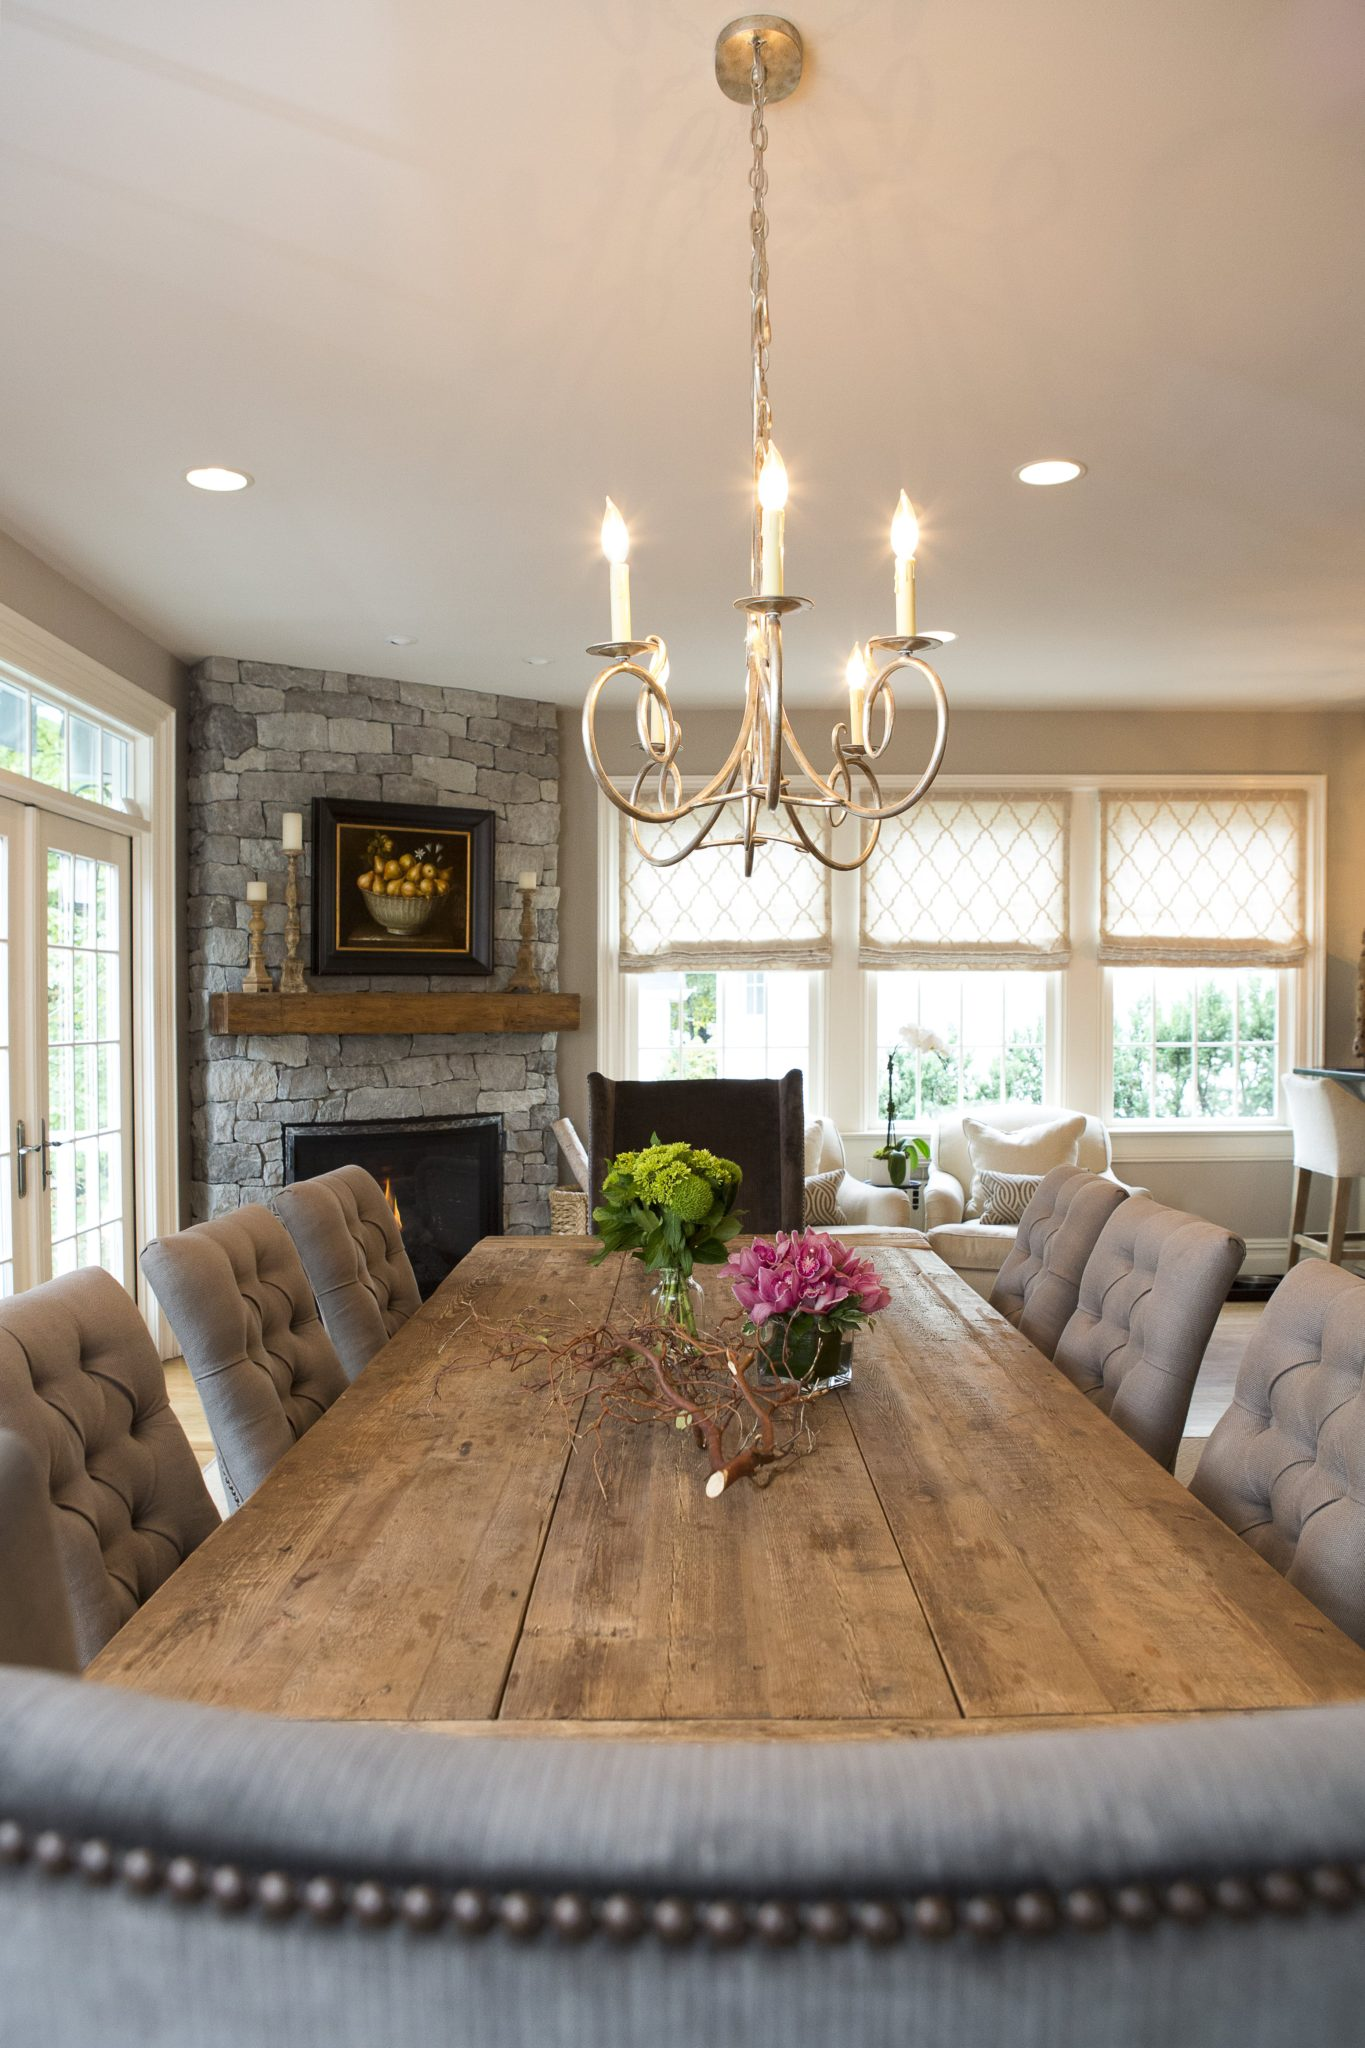 Livable Luxury - the old family room transitioned into a grand eat-in kitchen by House of Funk